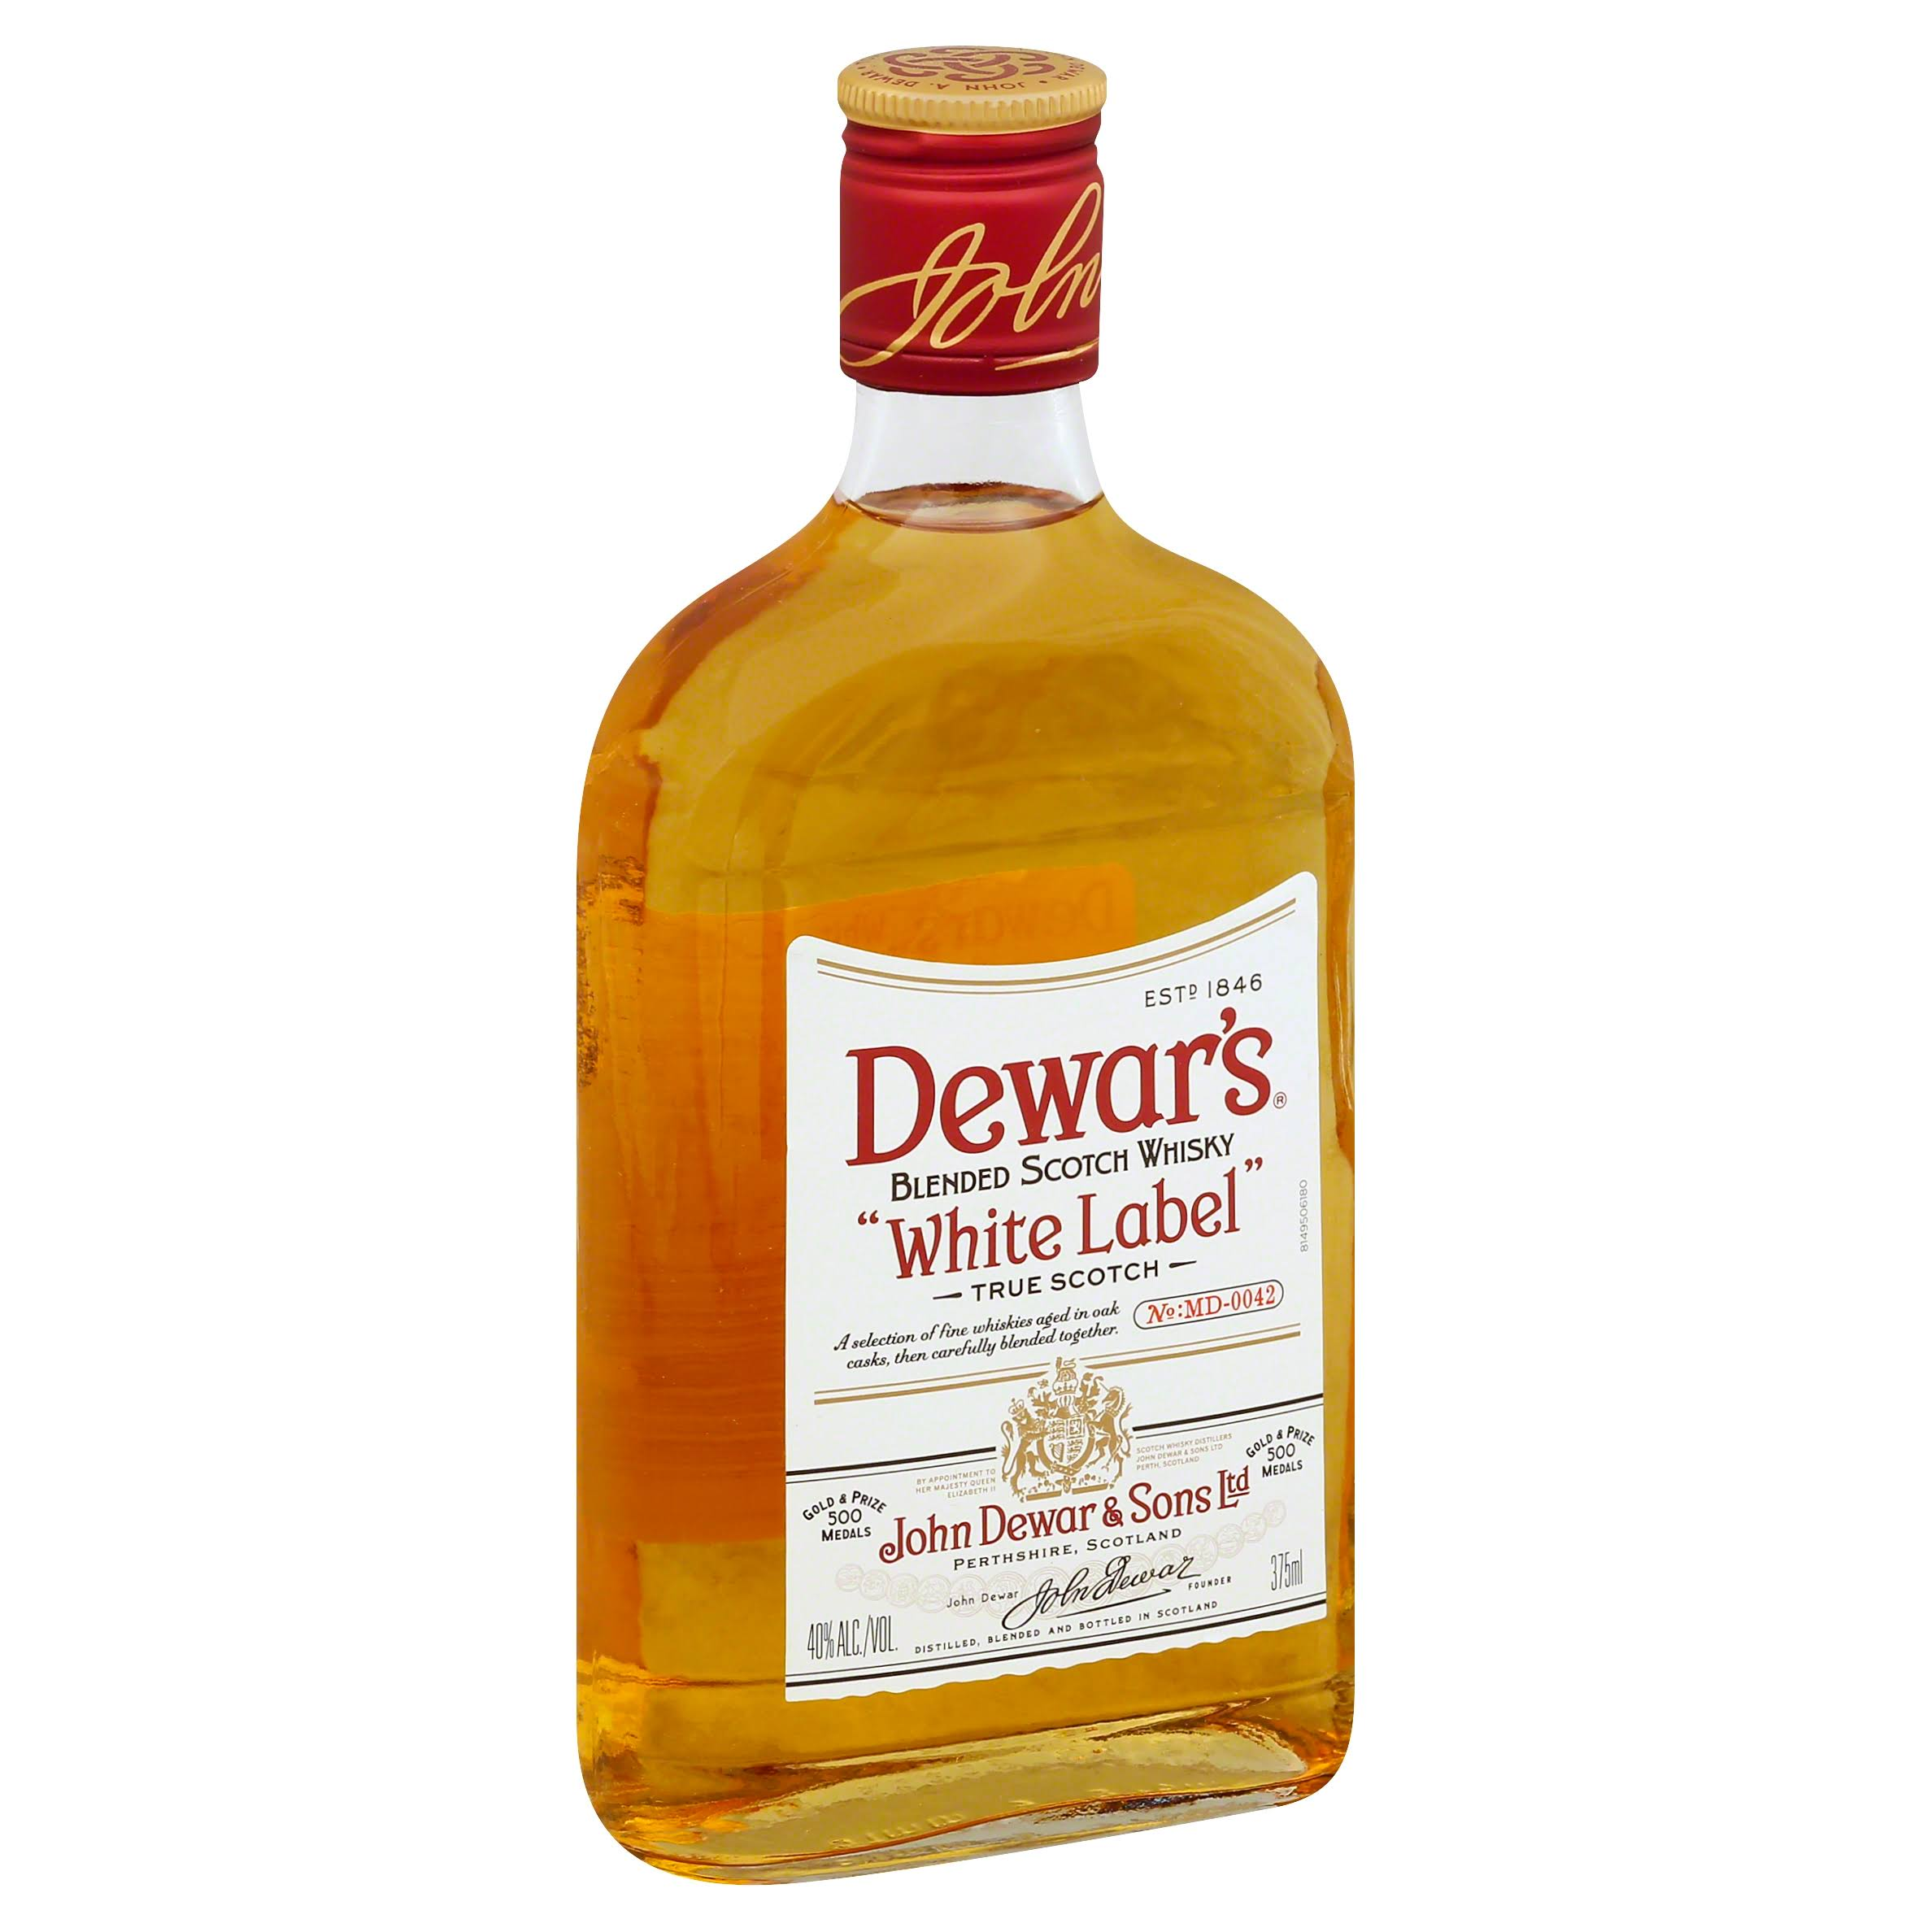 Dewar's White Label Scotch - 375 ml bottle